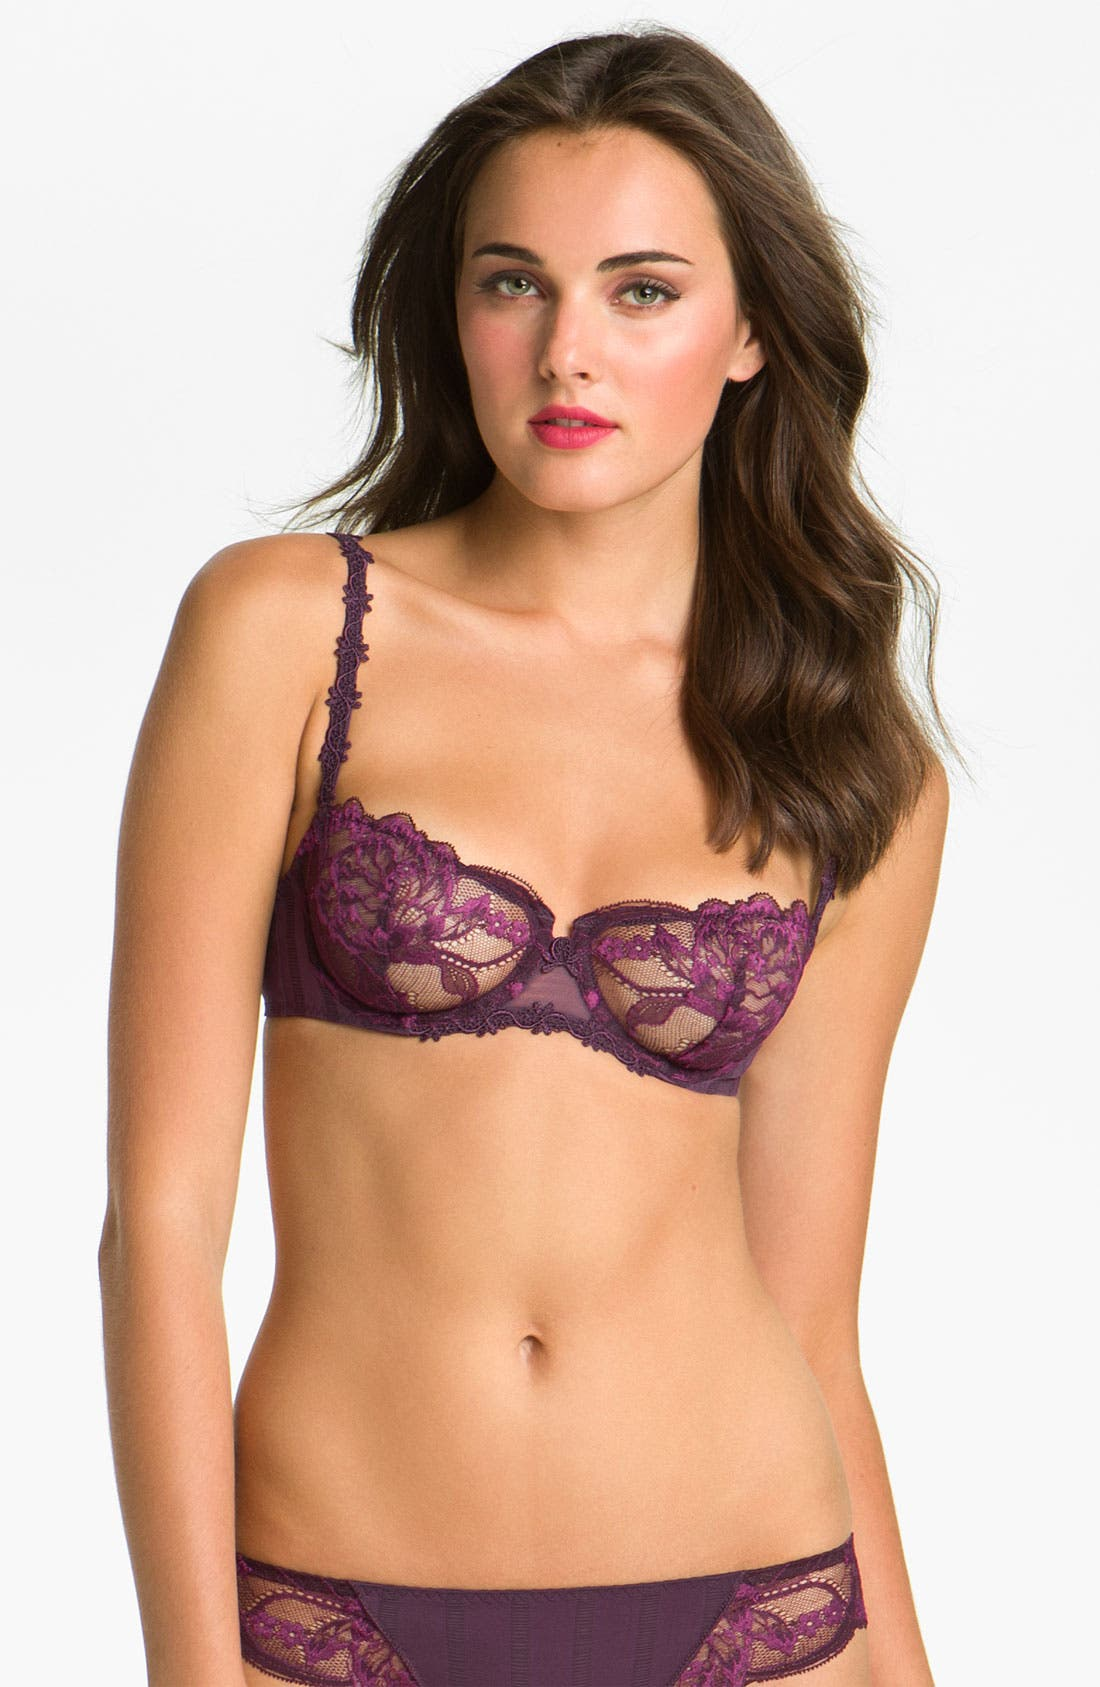 'Amour' Underwire Demi Bra,                             Main thumbnail 8, color,